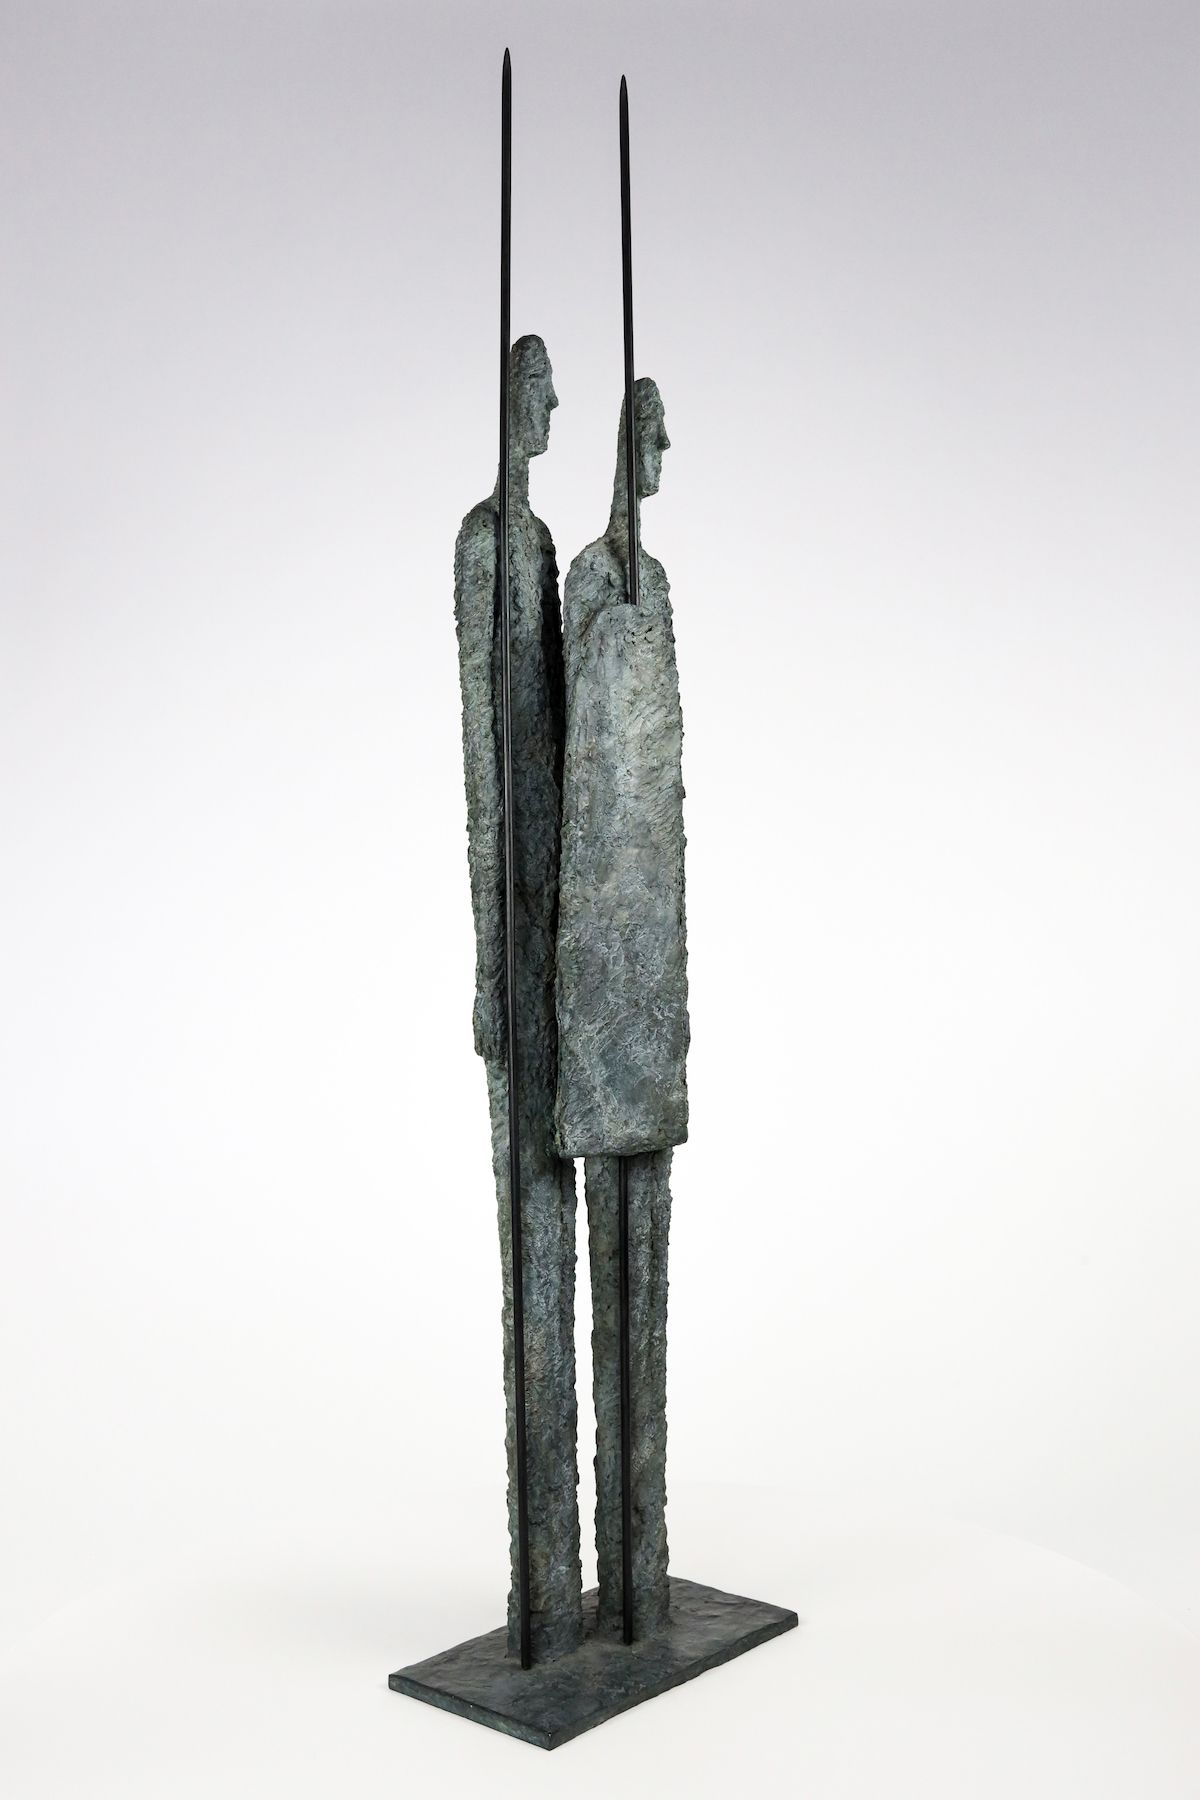 Great Warriors, Primary Forms series - Martine Demal - Sculpture - detail 3